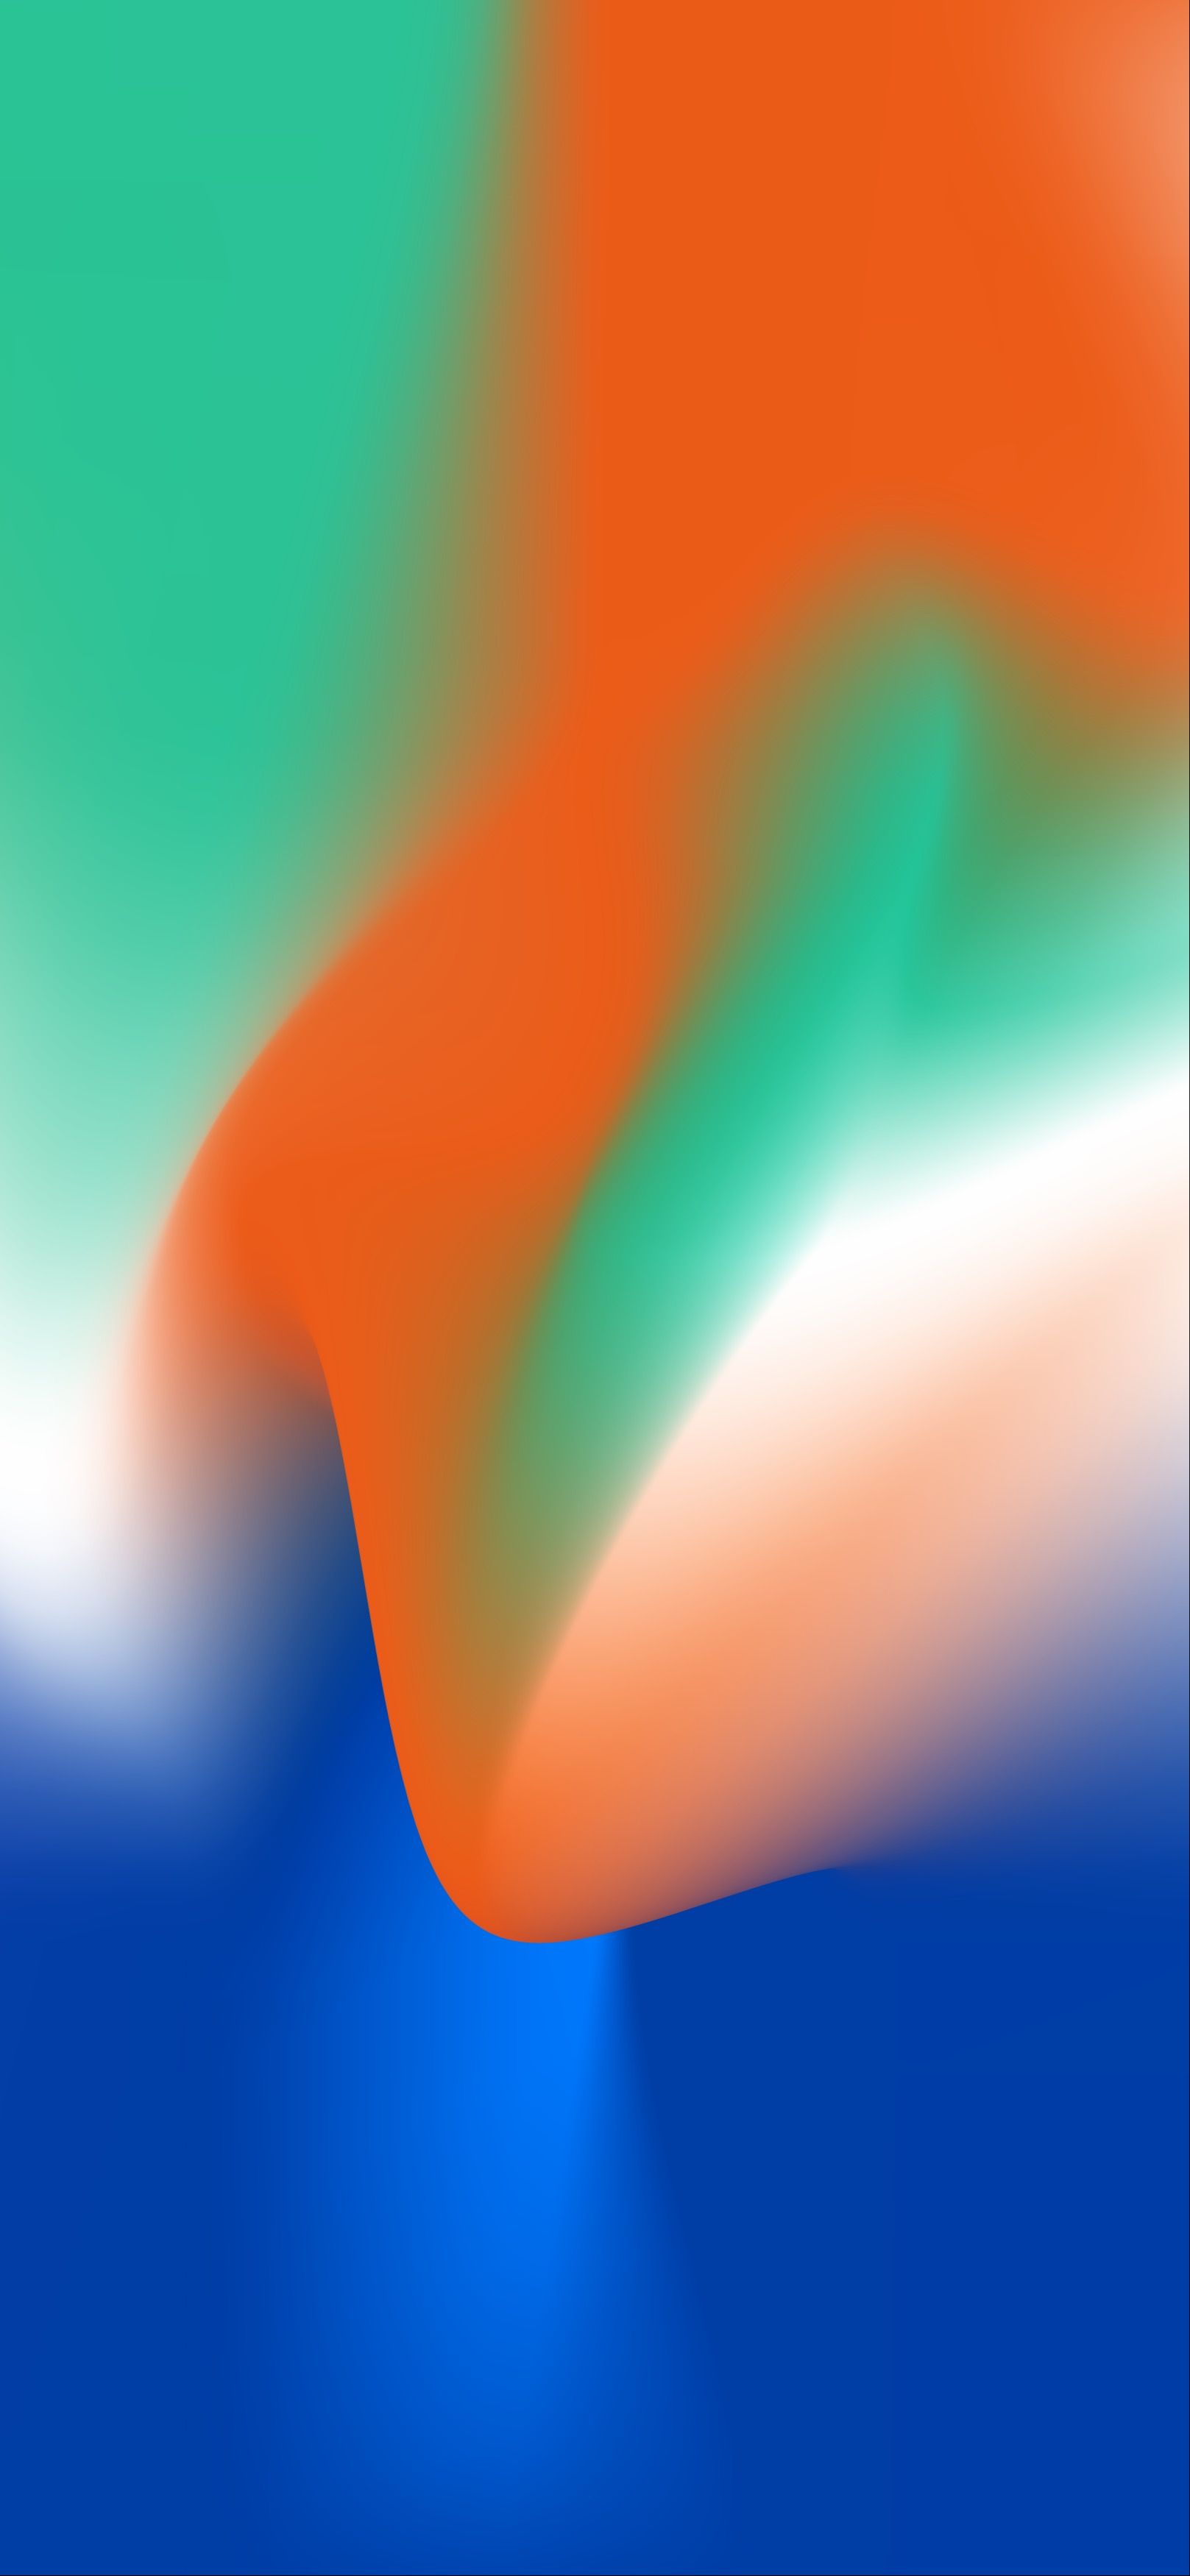 Colorful Gradient Ombre Iphonewallpaper Blurry Blurred Wavy Abstract Art Iphone Wallpaper Ios Hd Wallpaper Iphone Iphone Wallpaper